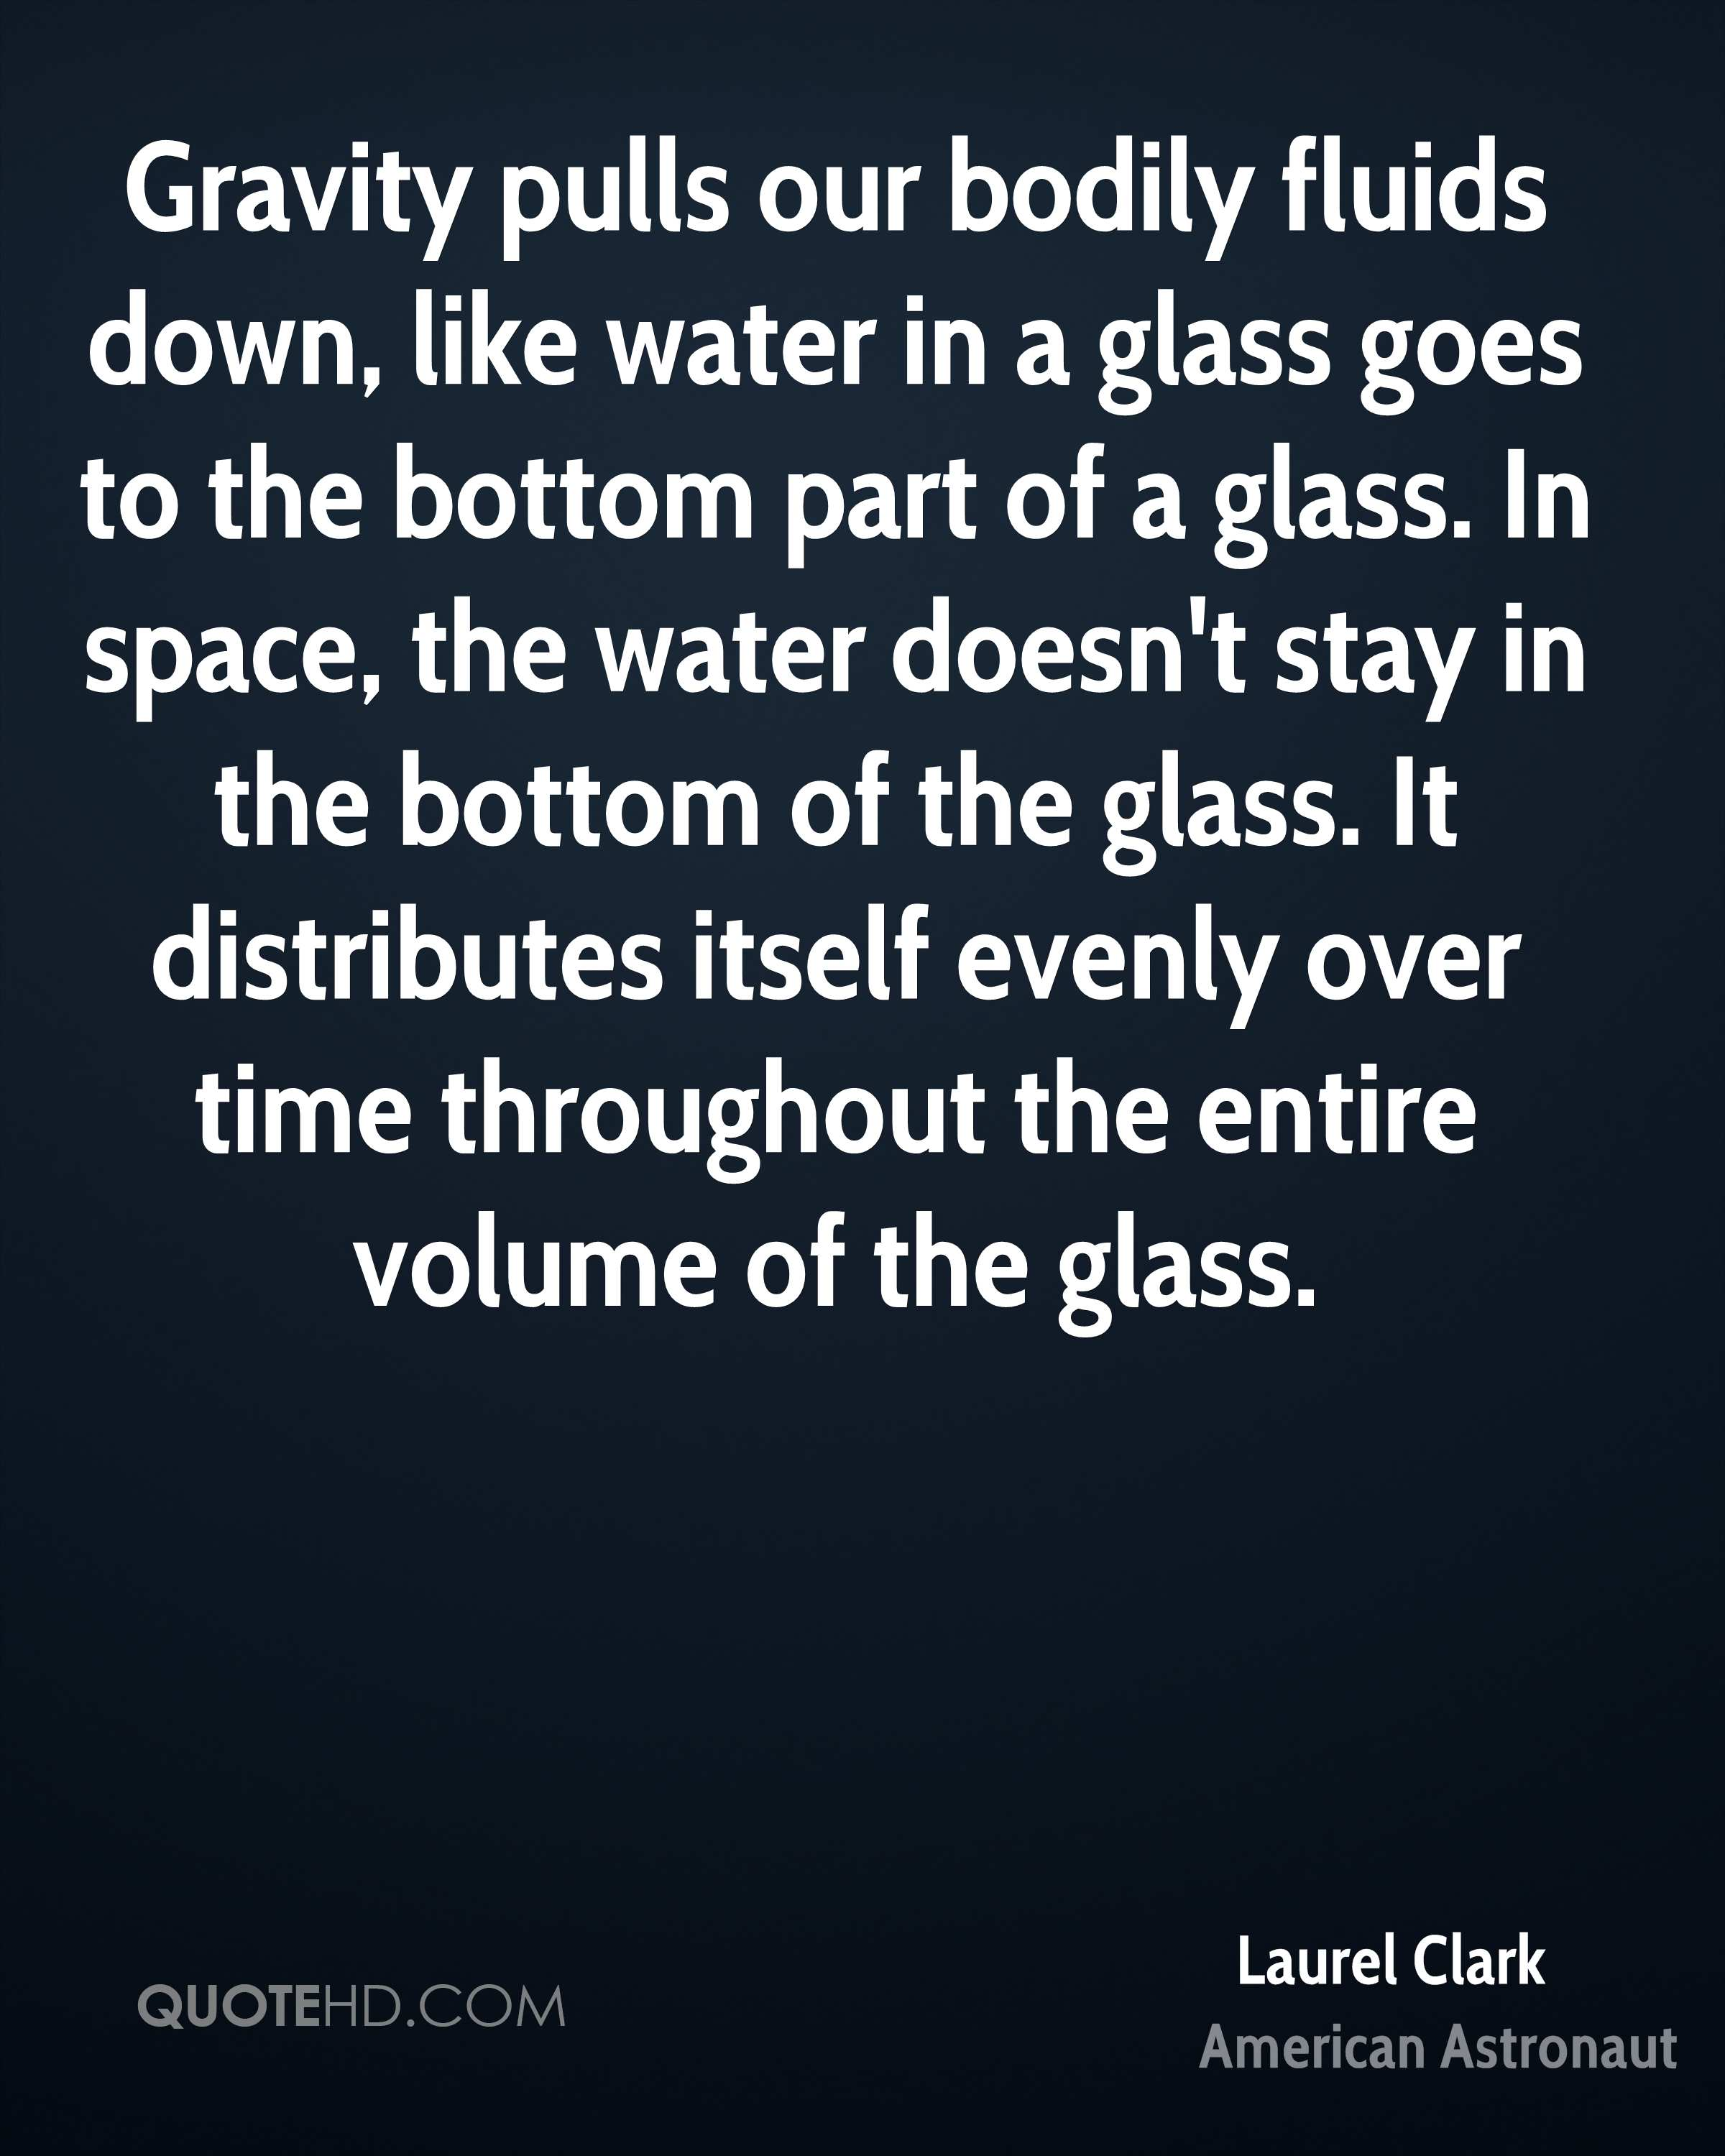 Gravity pulls our bodily fluids down, like water in a glass goes to the bottom part of a glass. In space, the water doesn't stay in the bottom of the glass. It distributes itself evenly over time throughout the entire volume of the glass.